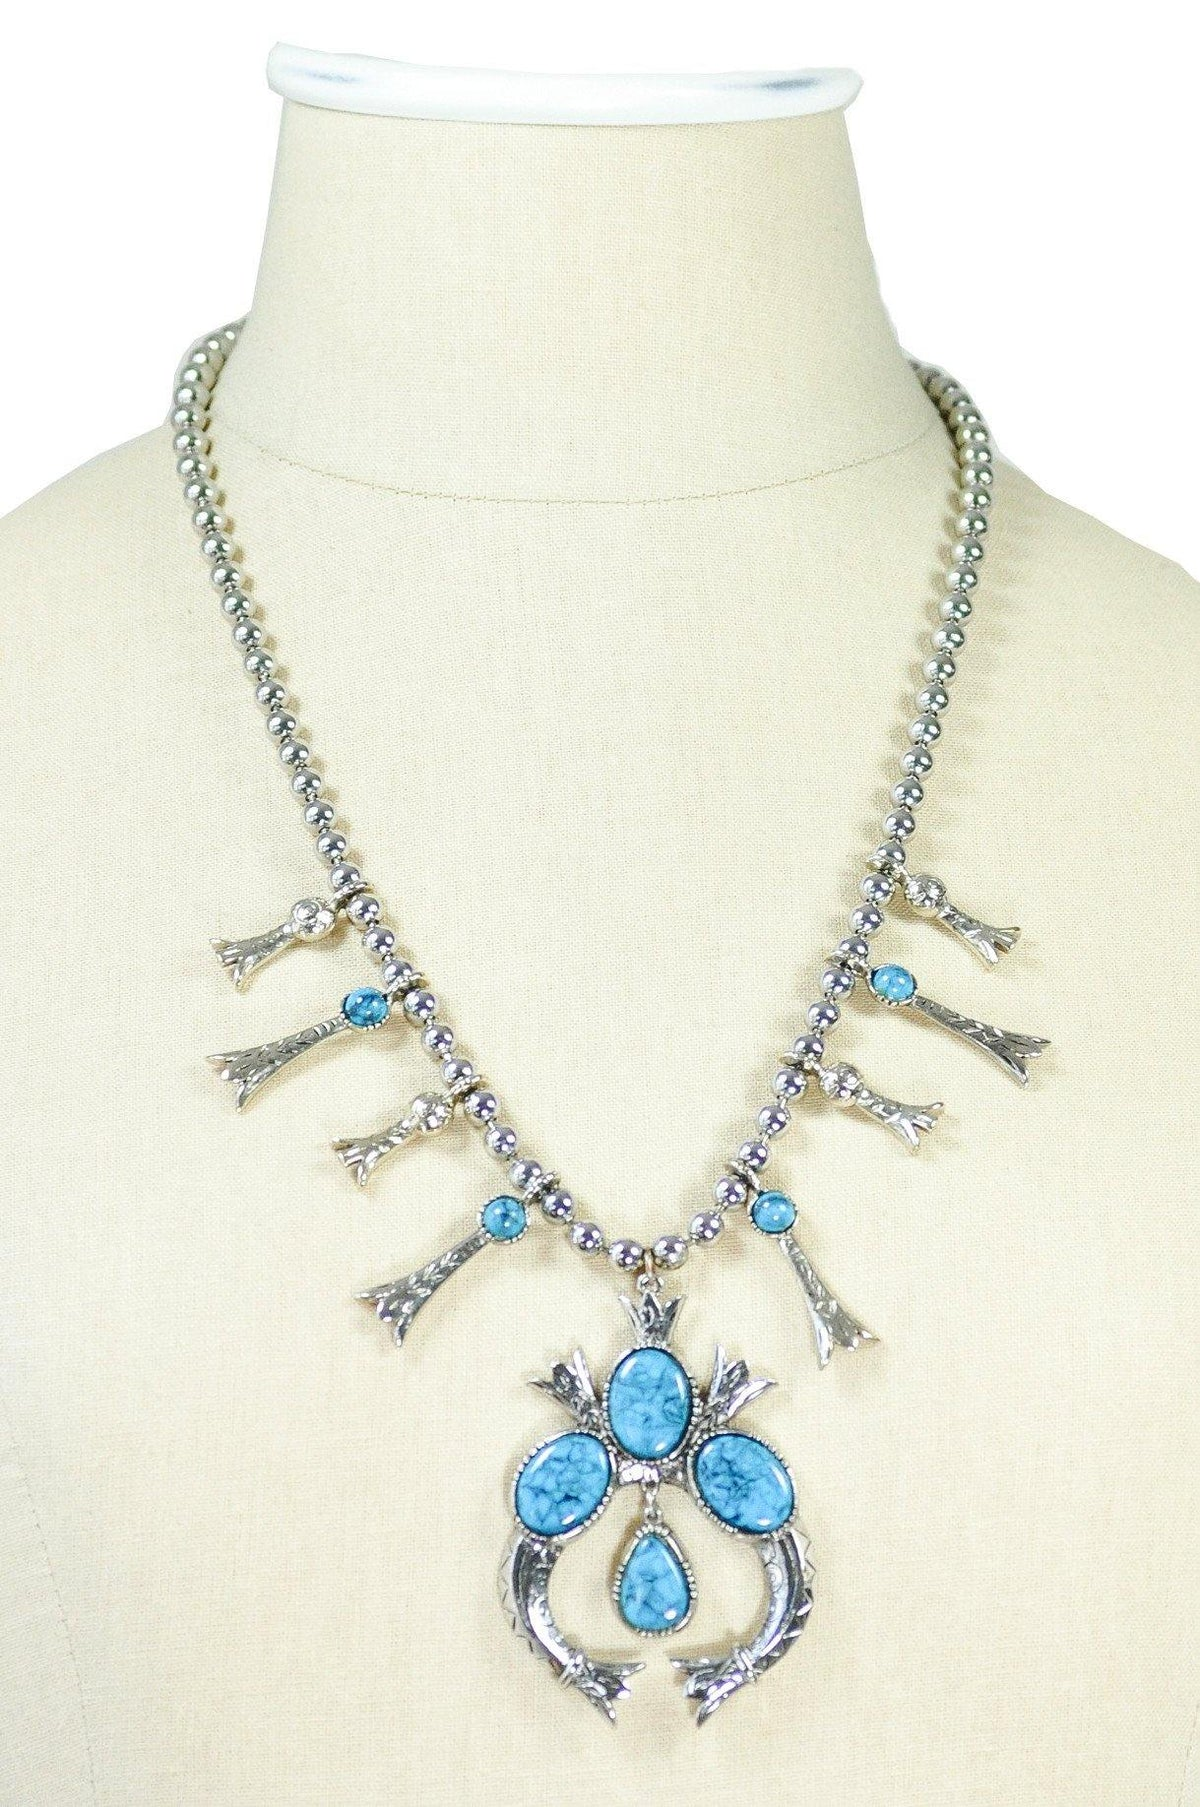 50's Vintage Statement Turquoise Necklace